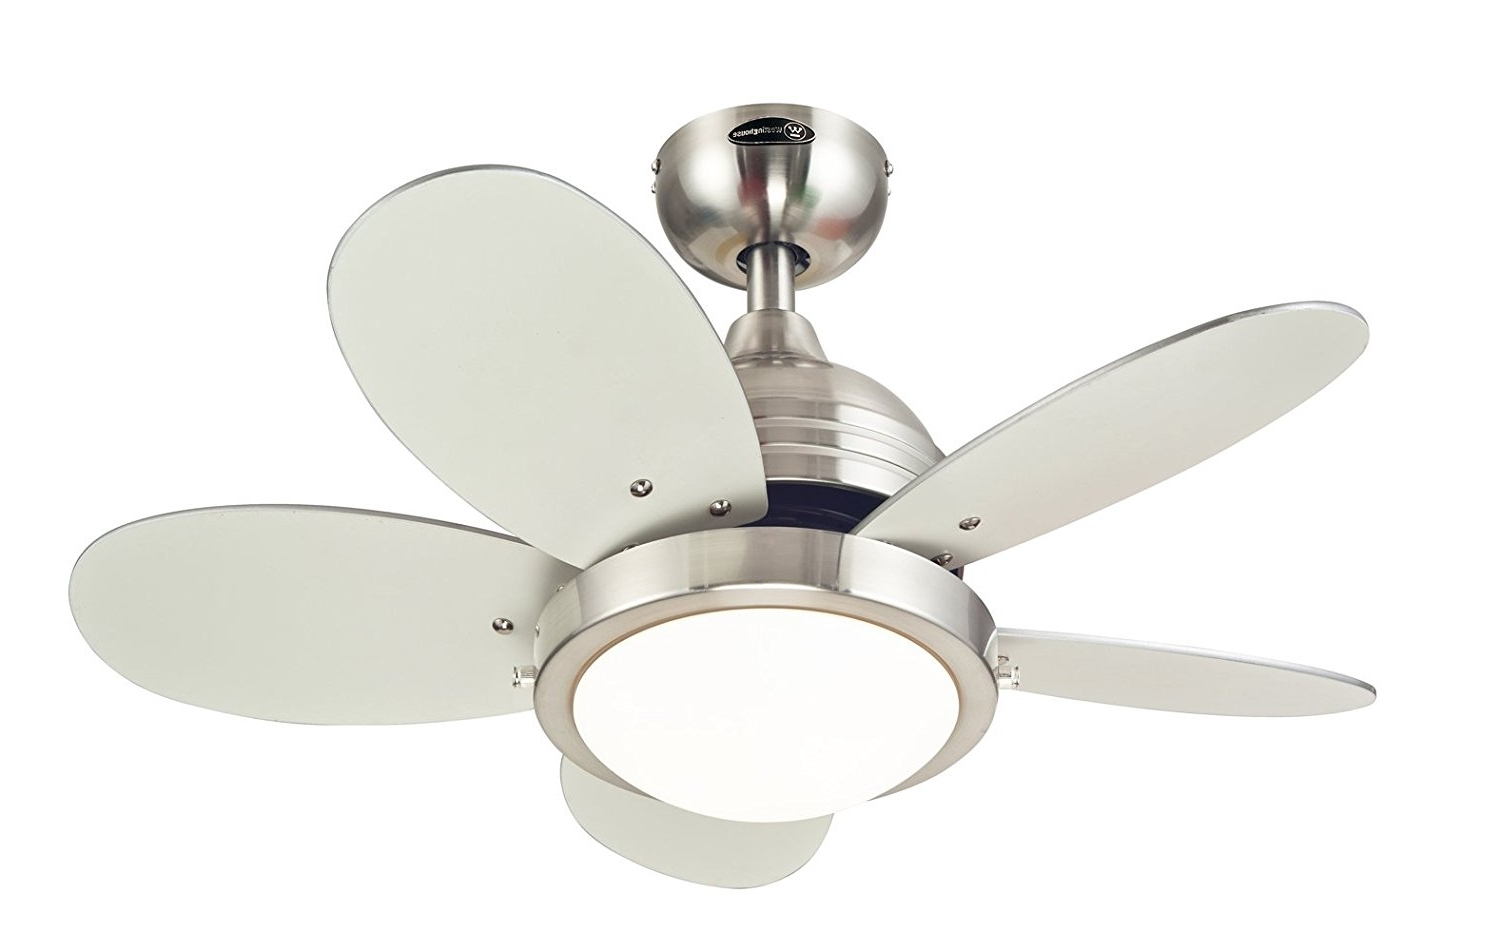 Latest Outdoor Ceiling Fans With Bright Lights Inside Ceiling Fan With Bright Light Stunning Ceiling Fans With Lights Led (View 15 of 20)